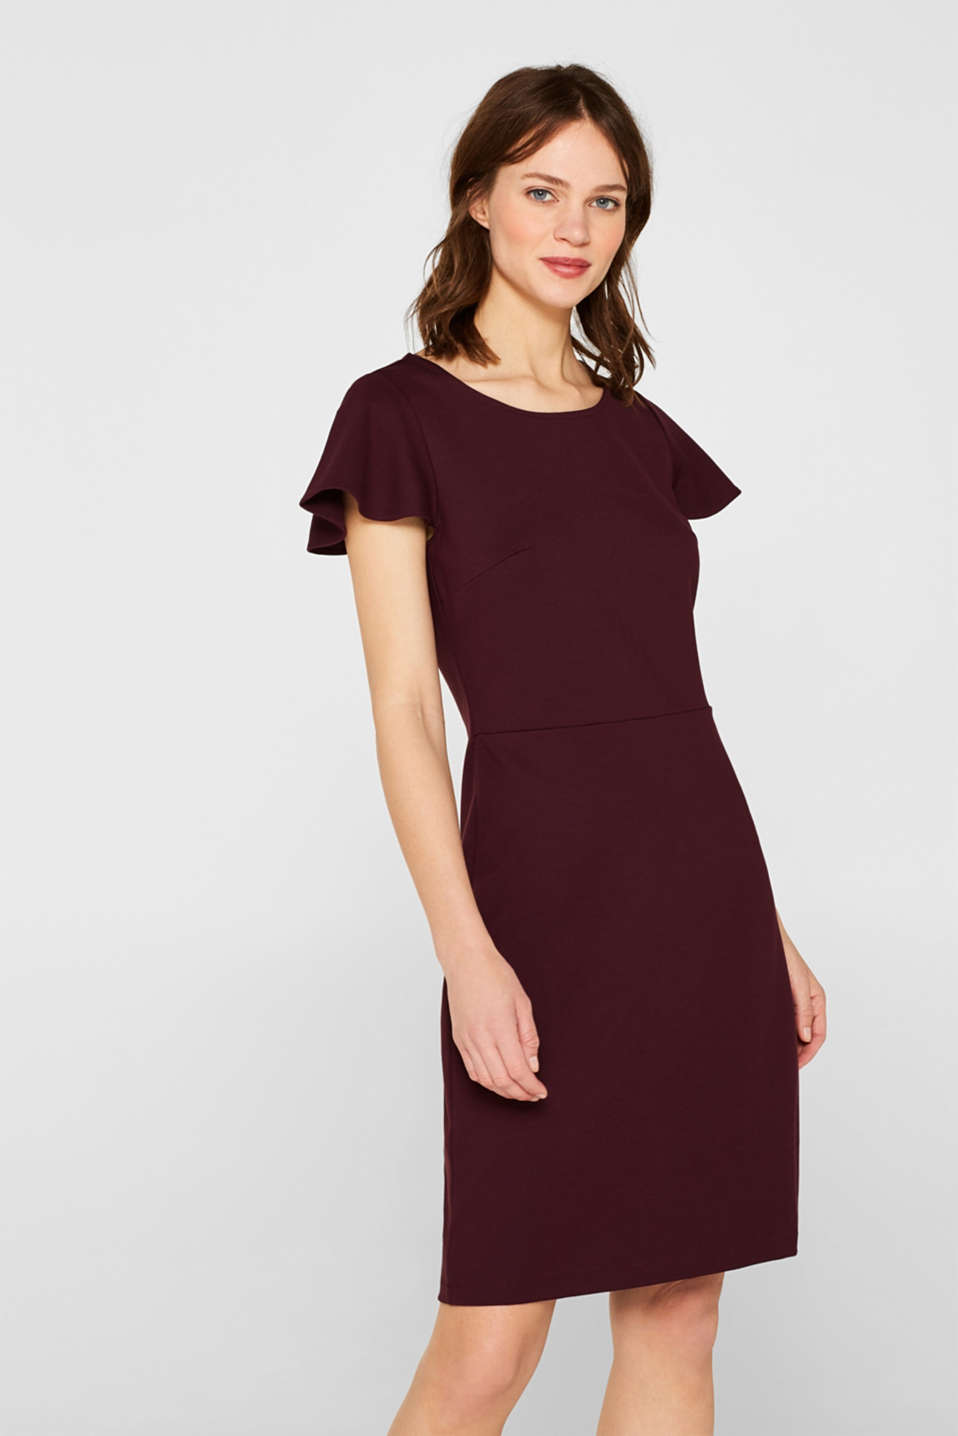 Esprit - Stretch jersey sheath dress with cap sleeves